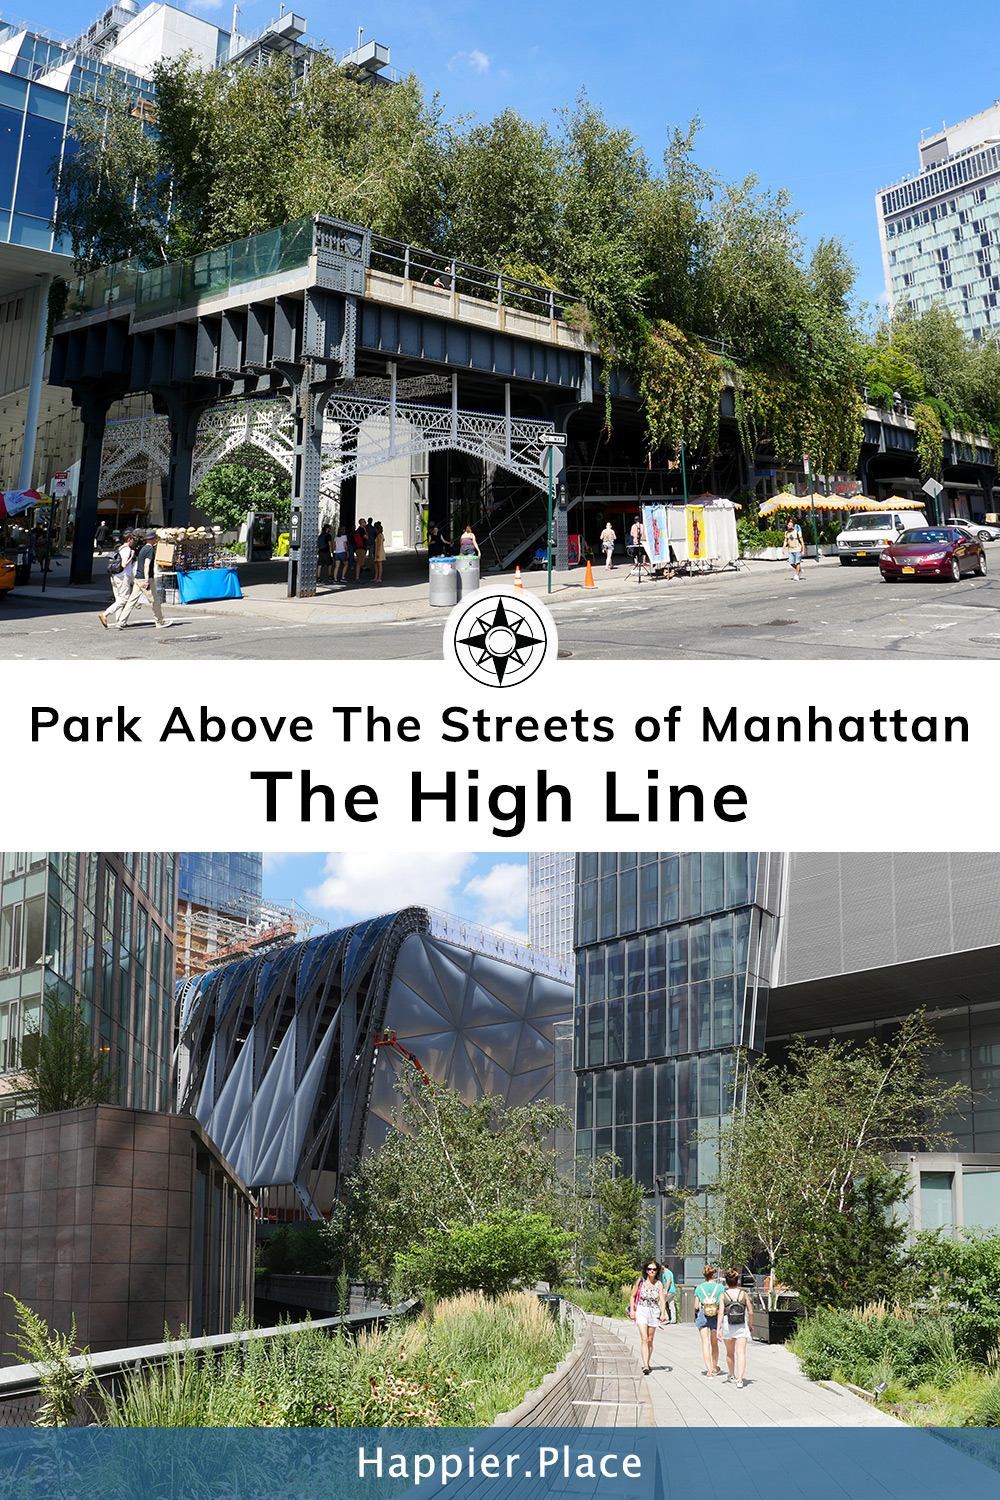 Above The Rest: The High Line - Elevated Park in NYC #HappierPlace